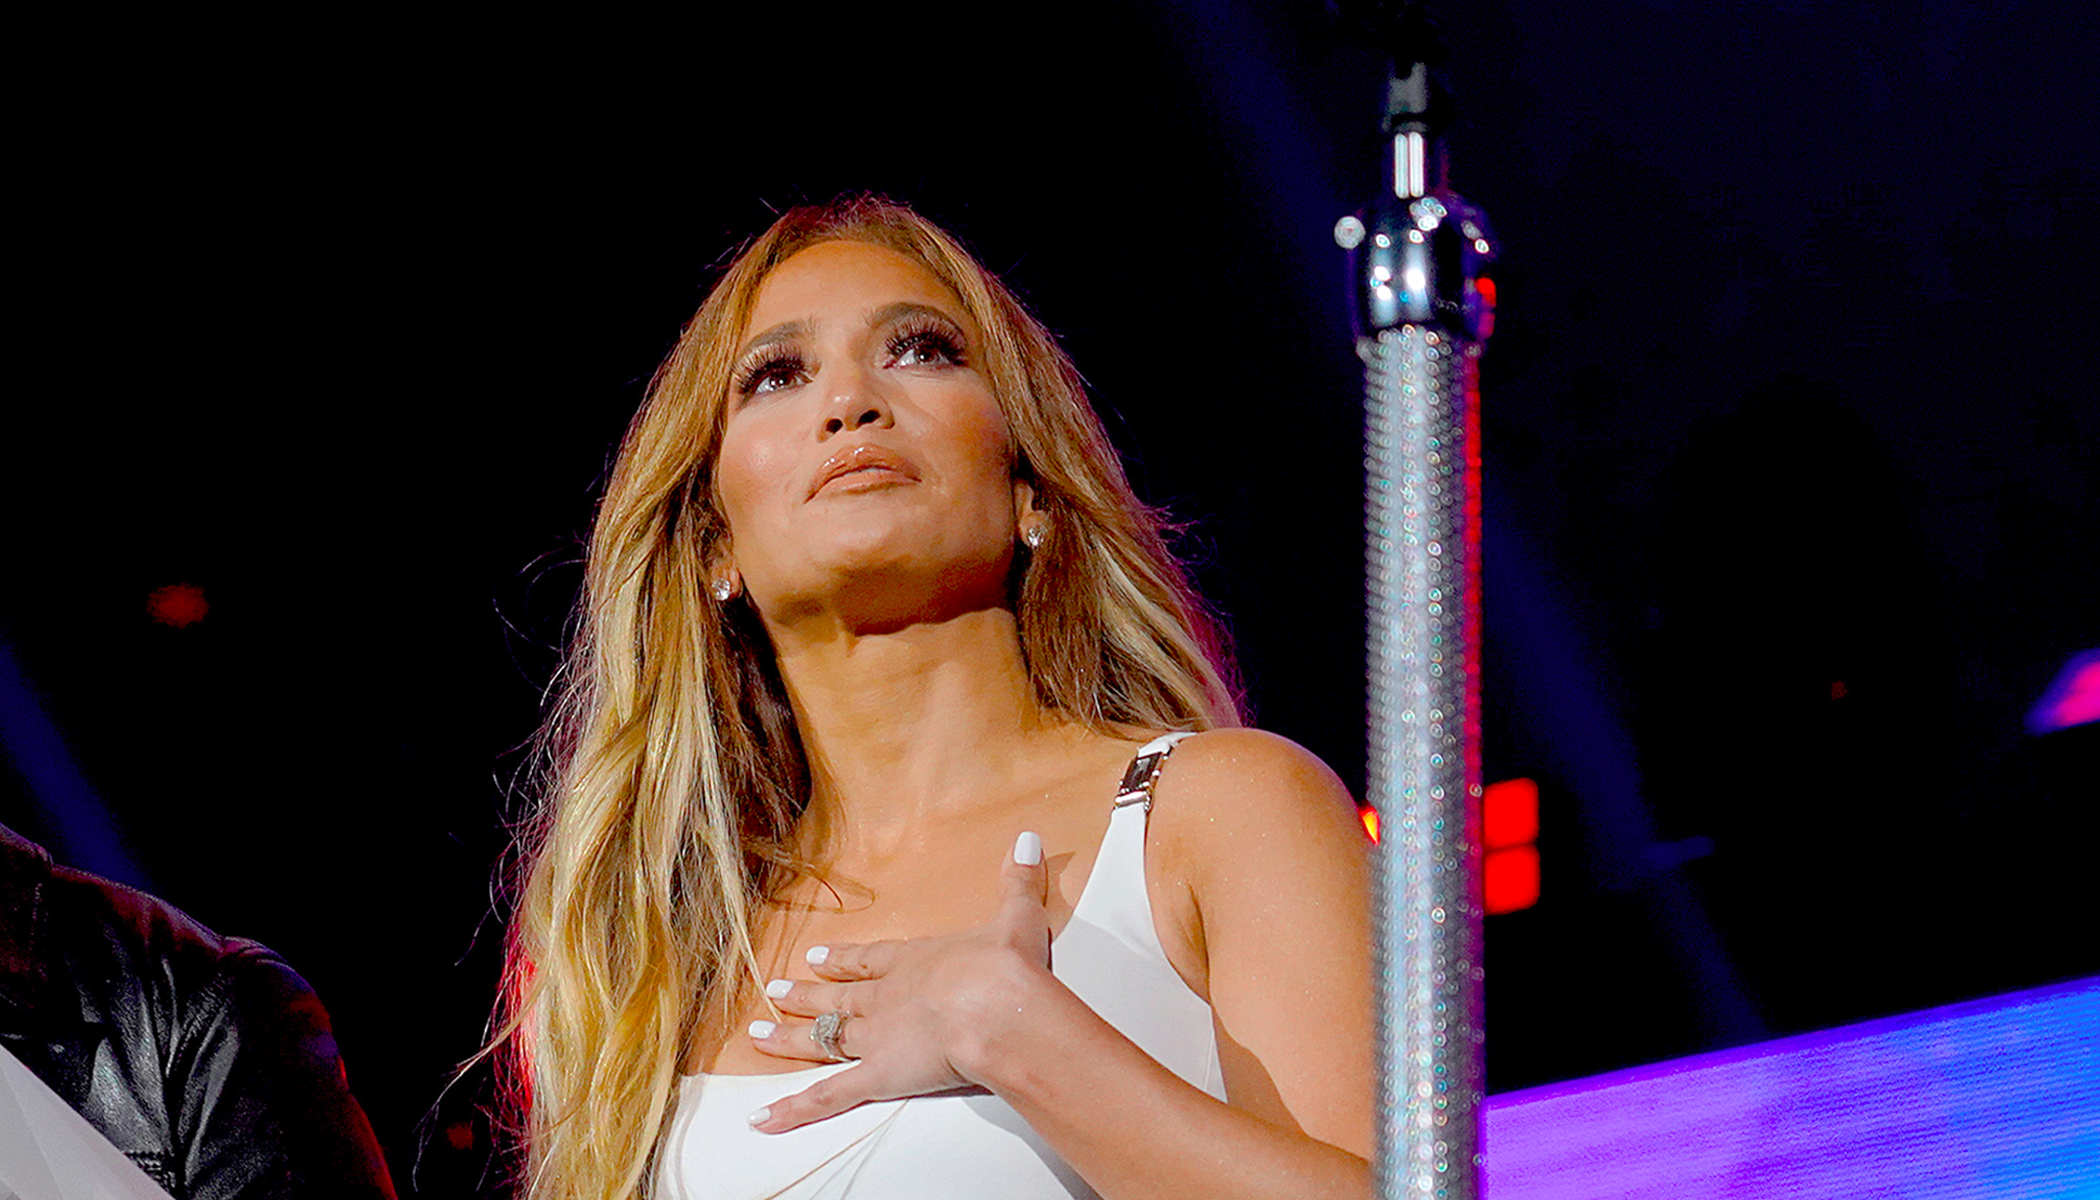 J Lo Brought to Tears by Teacher's Heartbreaking Post of Hungry Student, Pledges 1-yr Food Donation